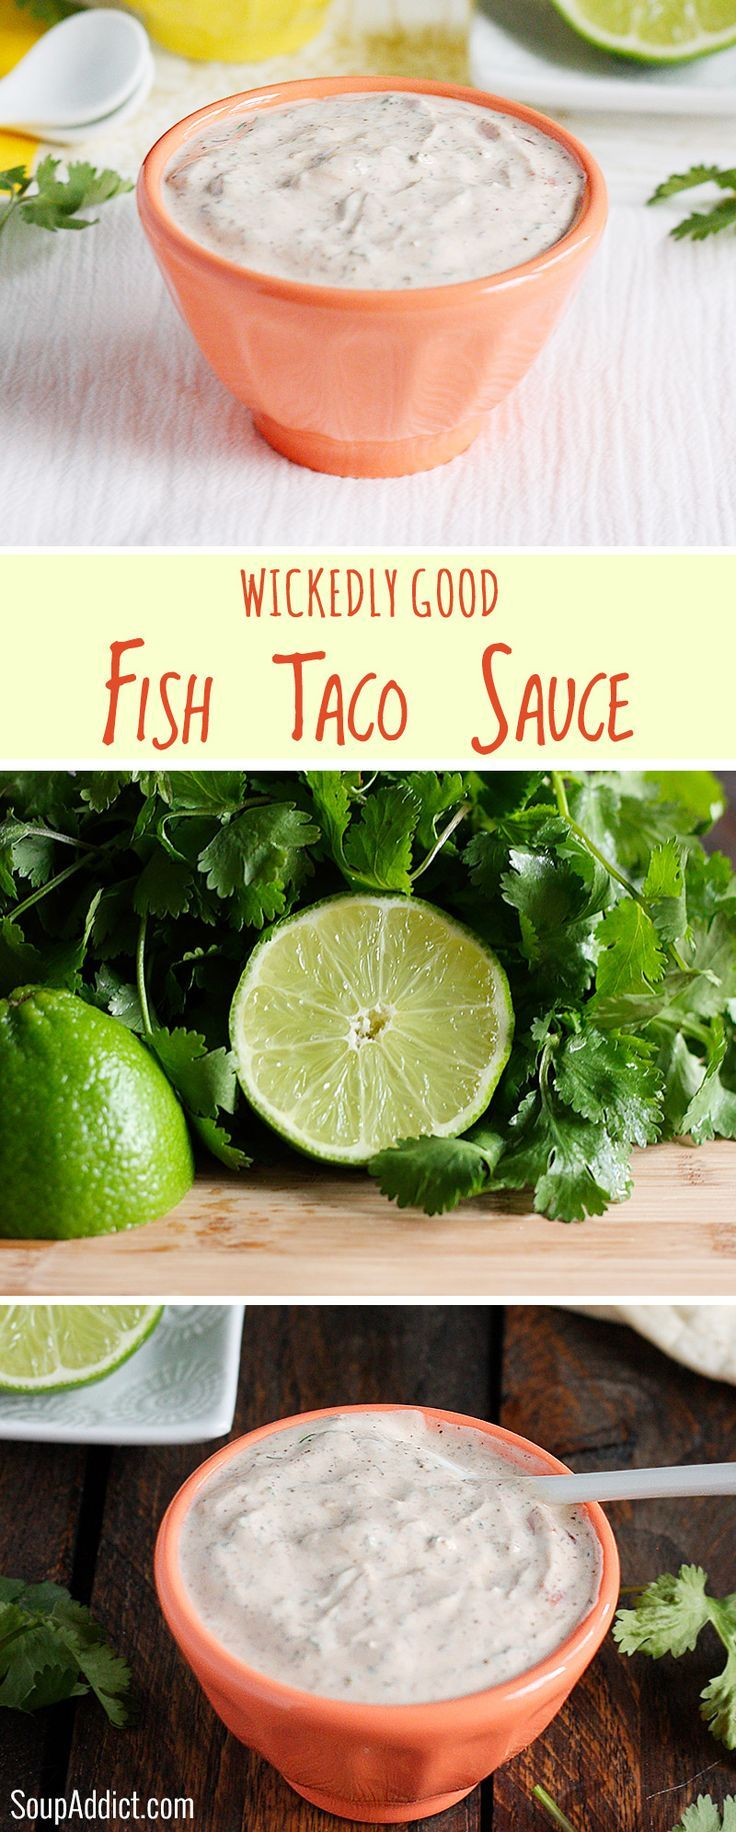 Wickedly Good Fish Taco Sauce - it's summer: fish taco bar time! And here's the best white sauce for your fish tacos. Perfectly spiced and make-ahead easy. Recipe at SoupAddict.com